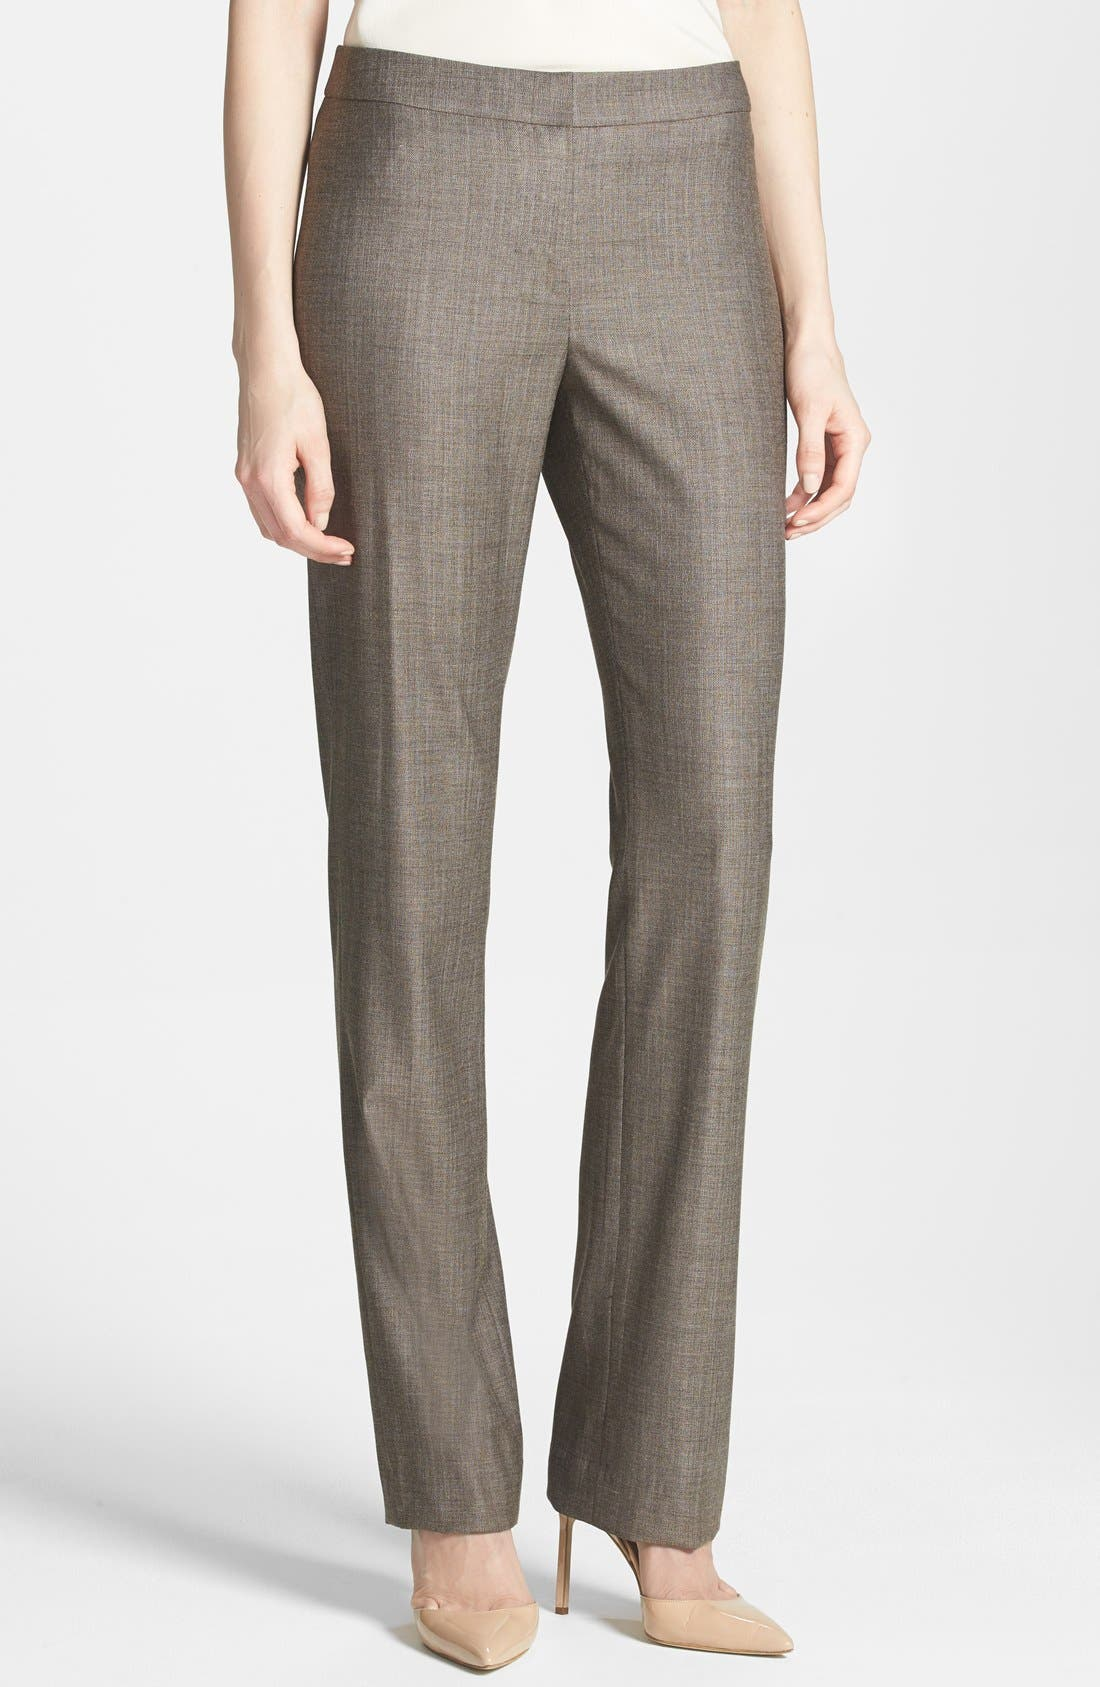 Alternate Image 1 Selected - Lafayette 148 New York 'Barrow - Bridgeport' Stretch Wool Suiting Pants (Petite)